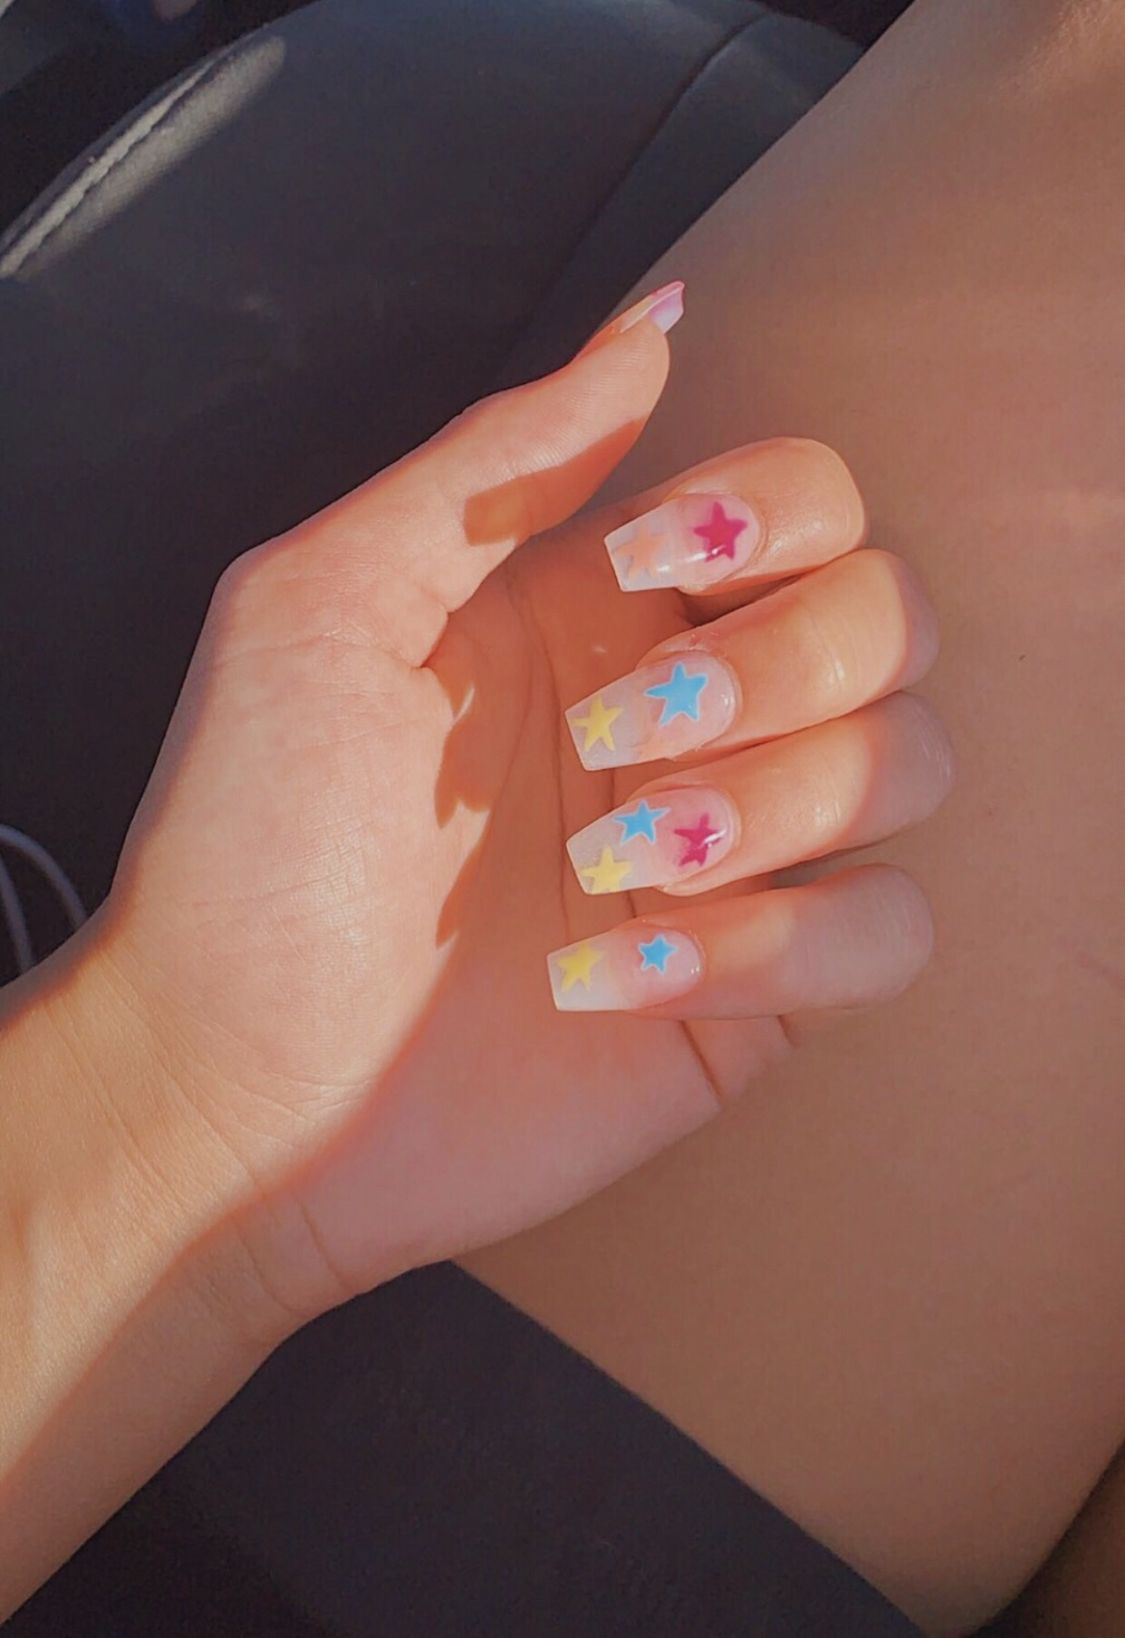 Star Nails Nails Mood Moods Summer Bright Hand Style Blue Yellow Red Stars Starnails Pretty Acrylic Nails Cute Acrylic Nails Fake Nails